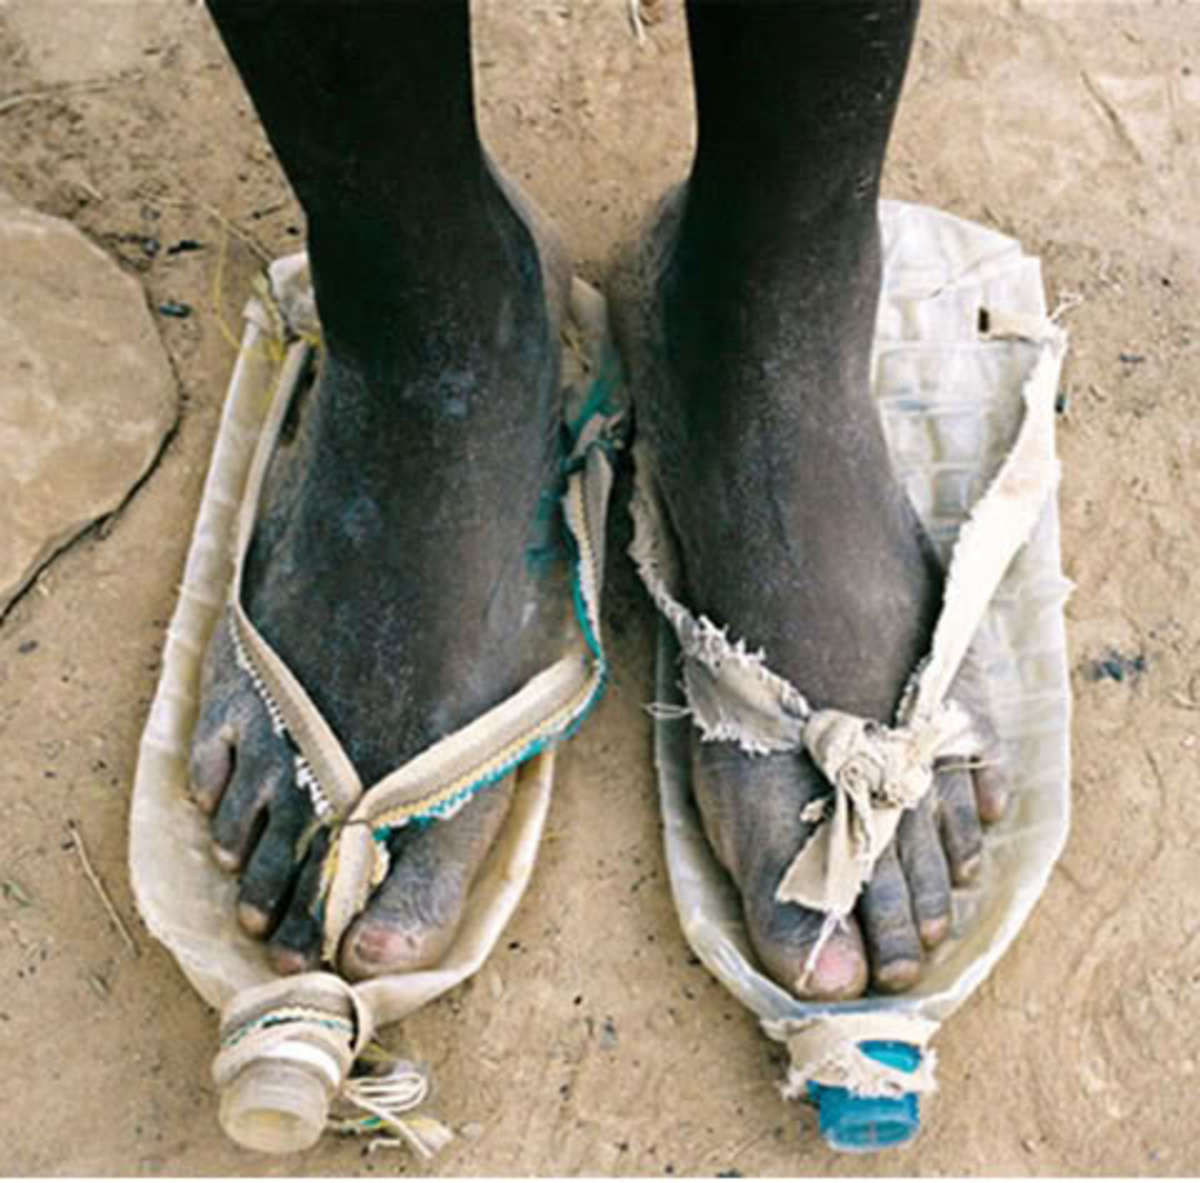 These are sandals made from water-bottles...